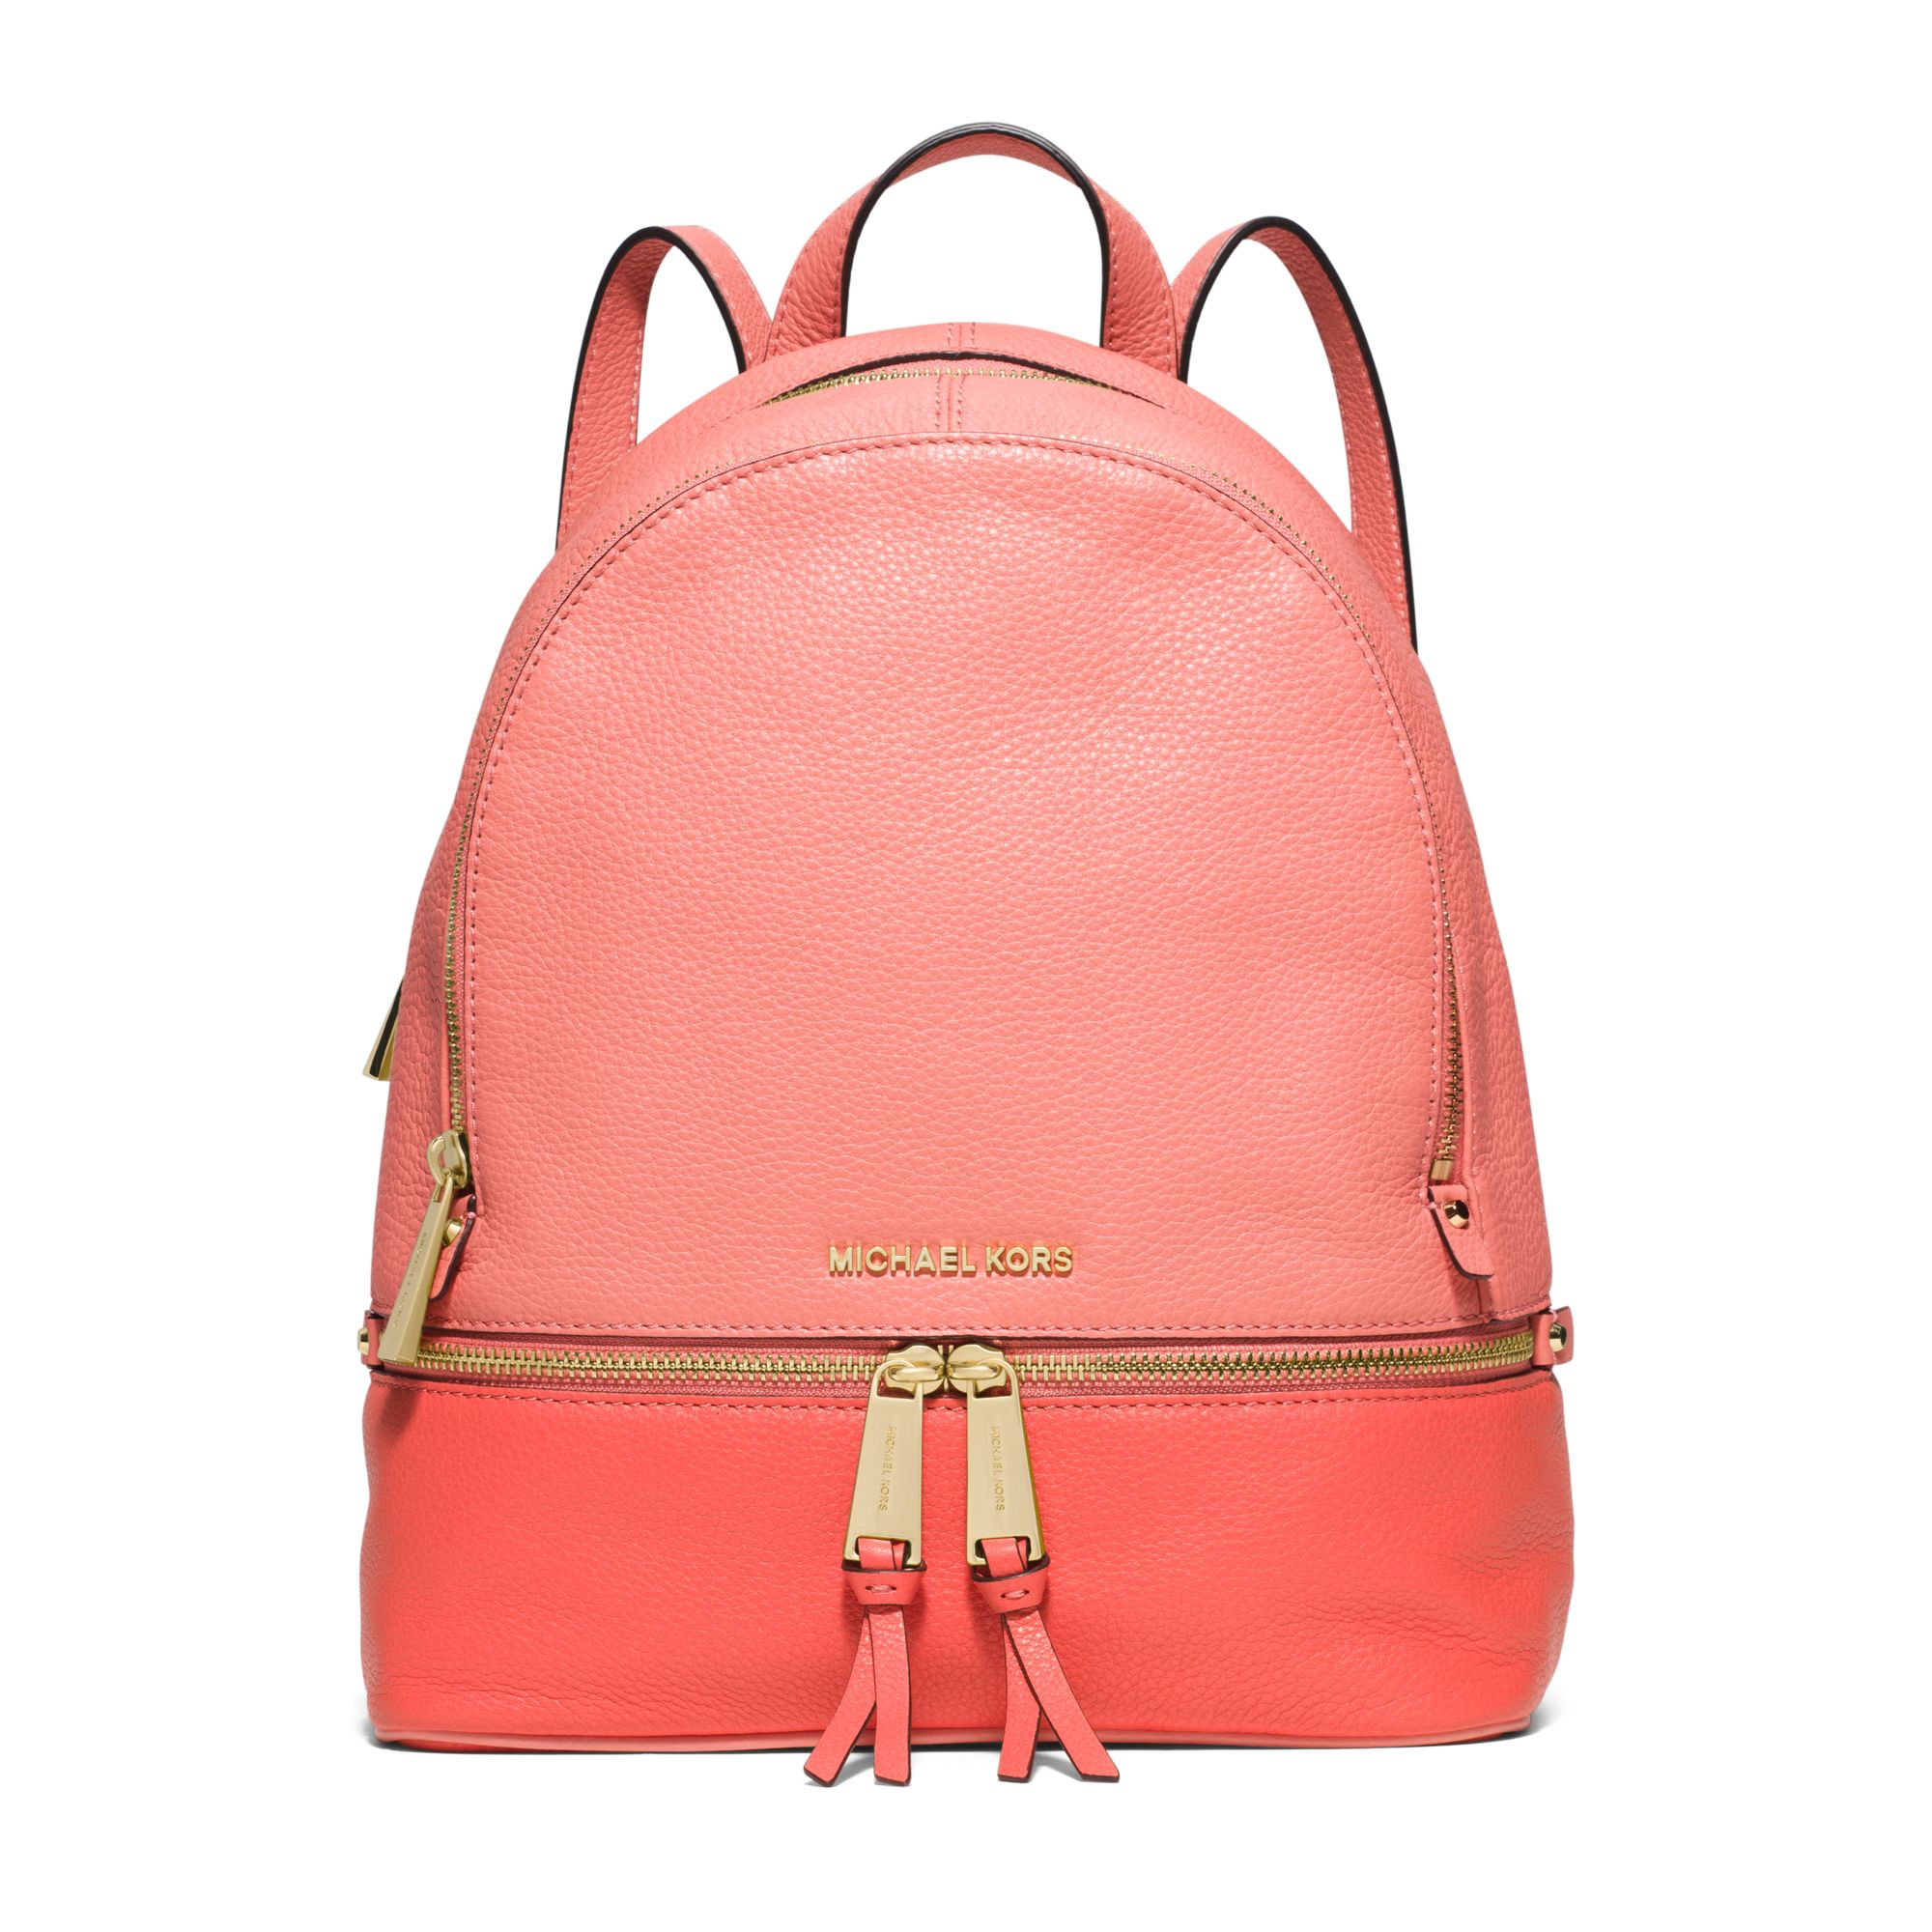 0583e7a2f907 Michael Kors Rhea Medium Color-block Leather Backpack in Pink - Lyst